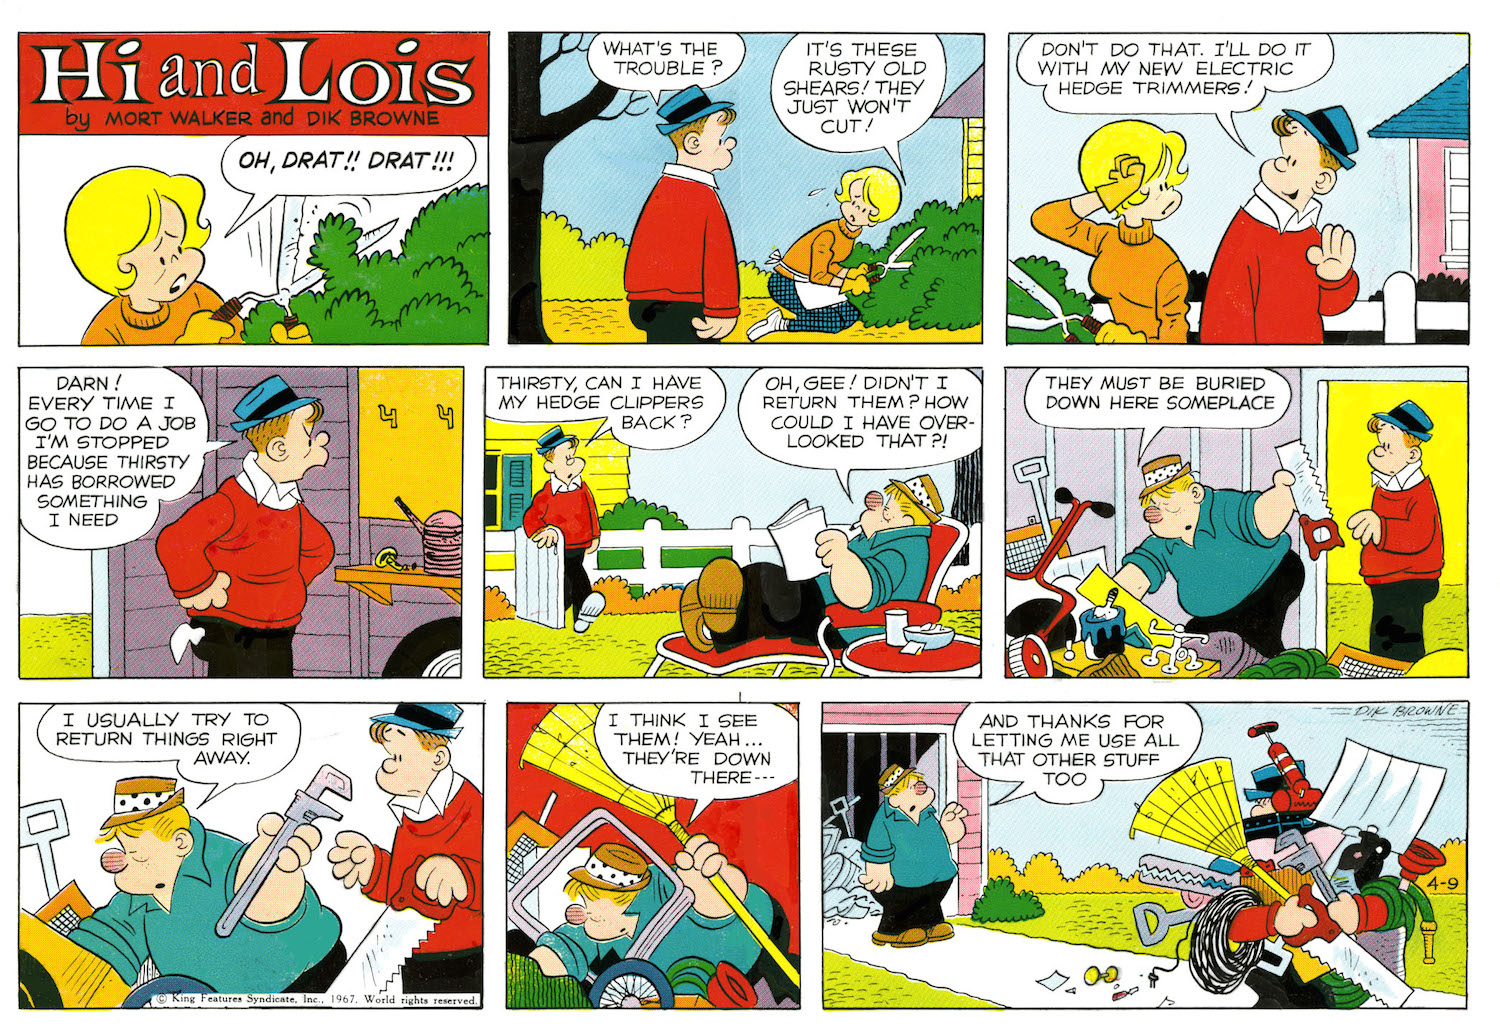 Hi and Lois Sunday page color proof, April 9, 1967.